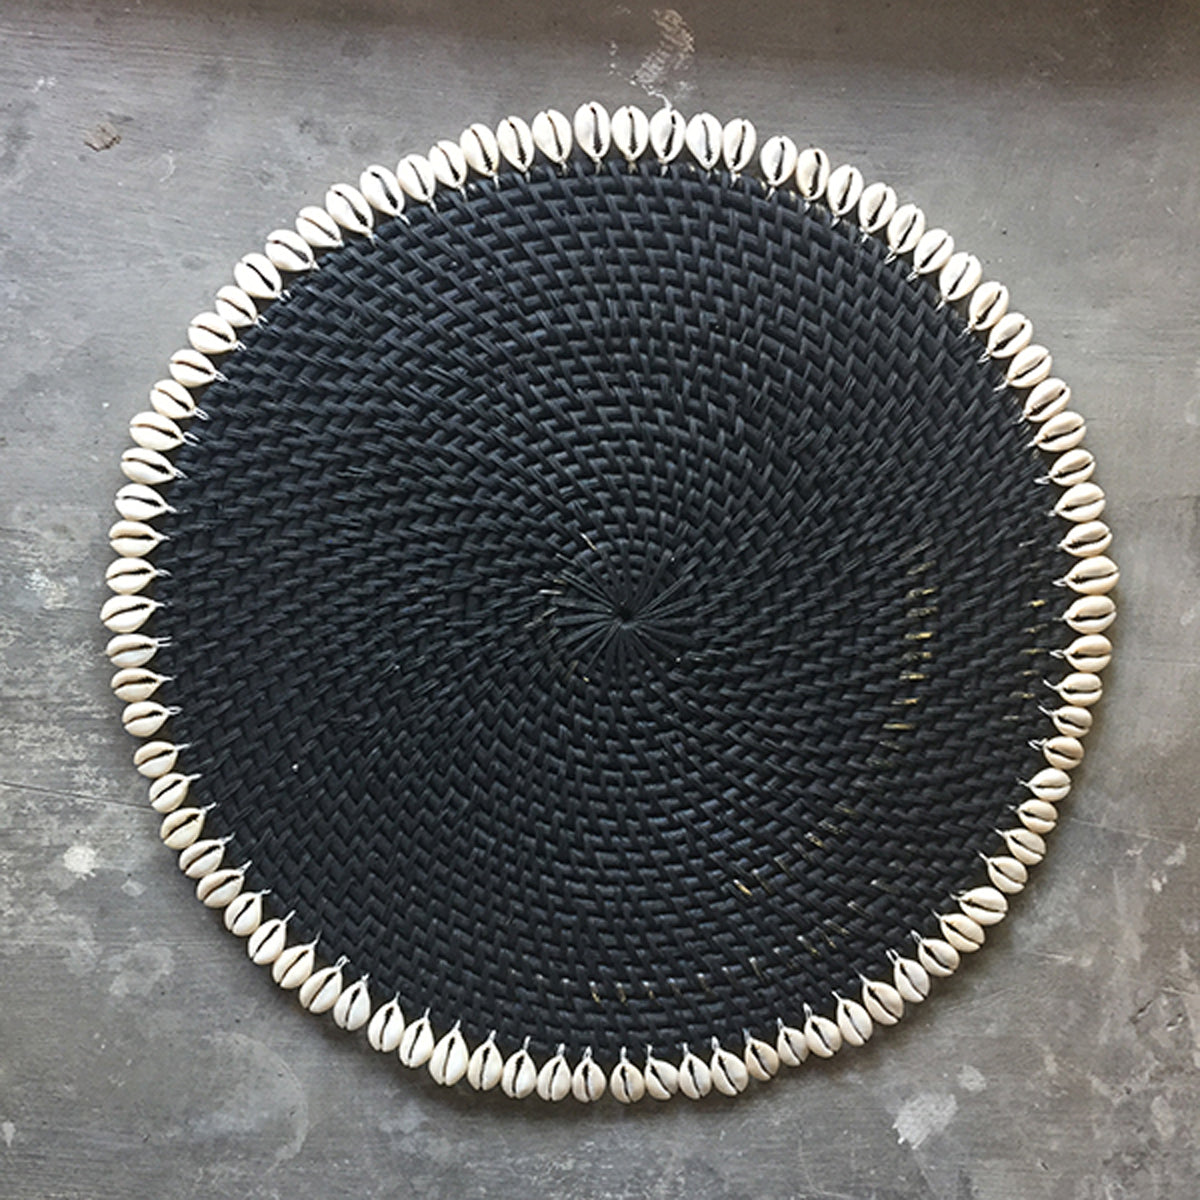 SHL187-5 BLACK ROUND RATTAN PLACEMAT WITH SHELL FRINGE